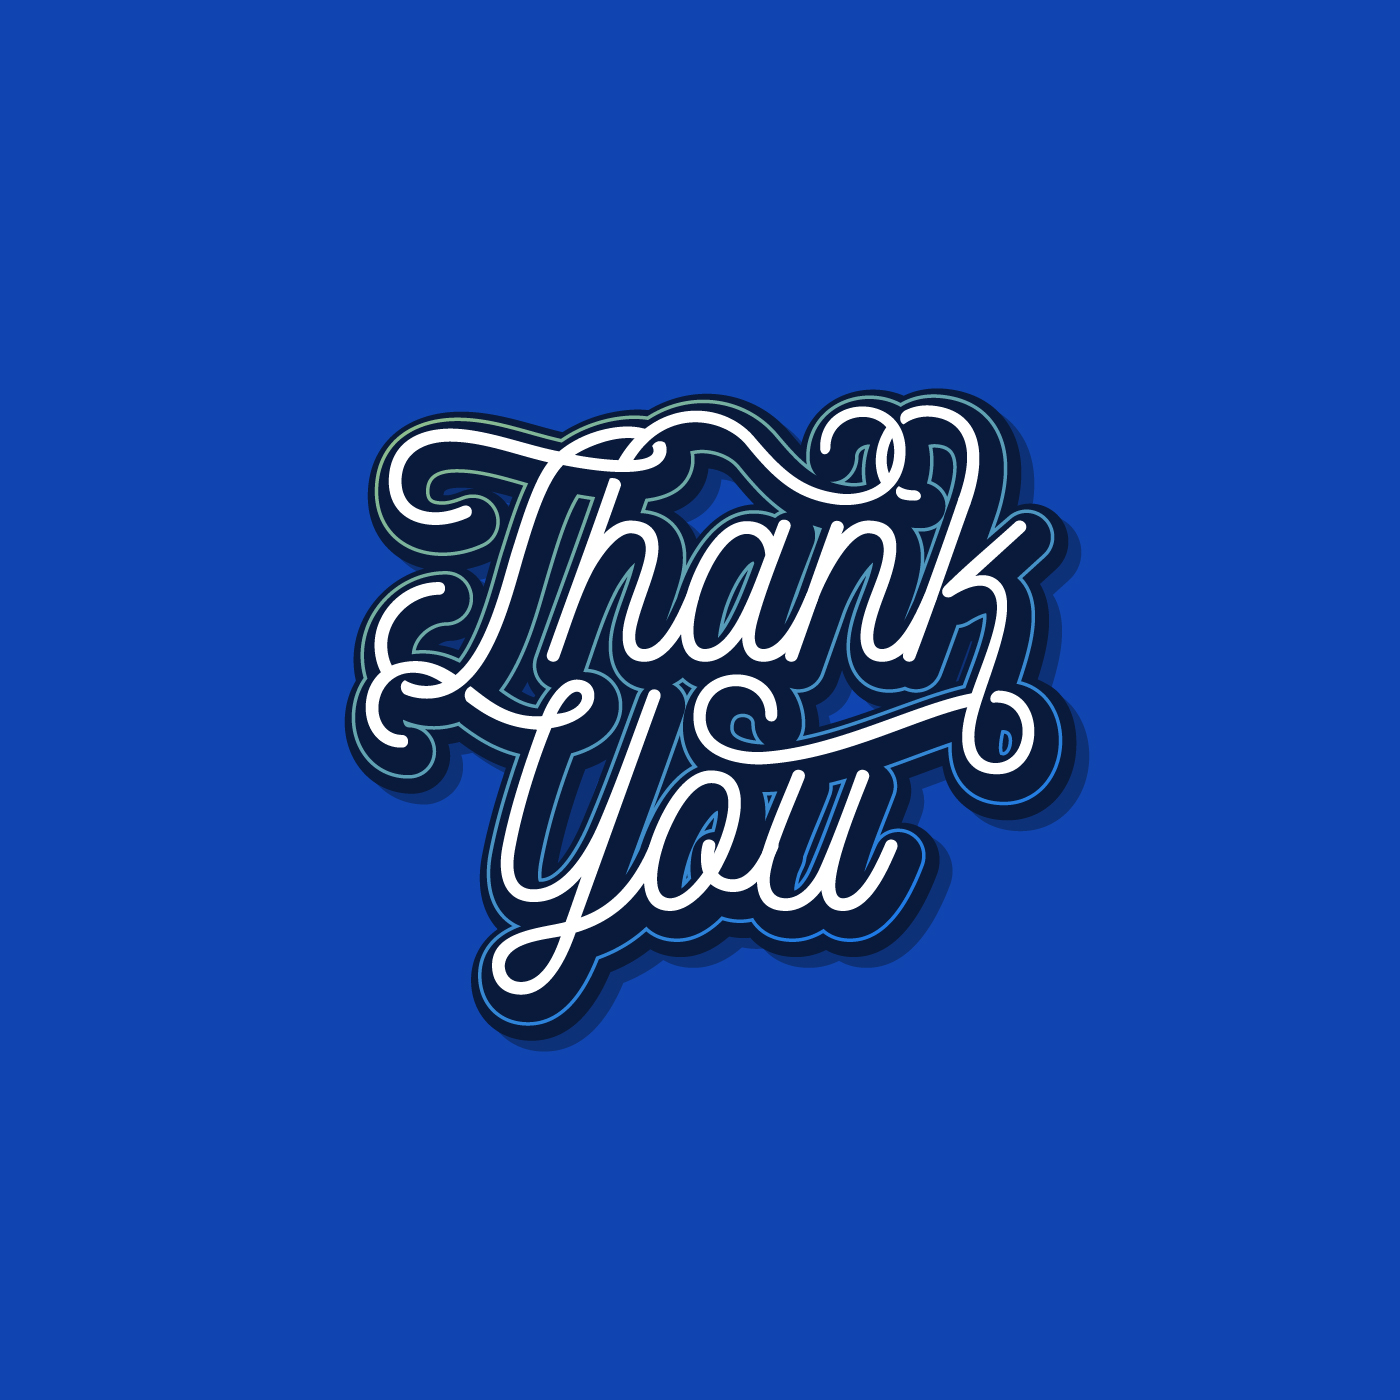 Custom Thin Script Thank You Typography Vector Download